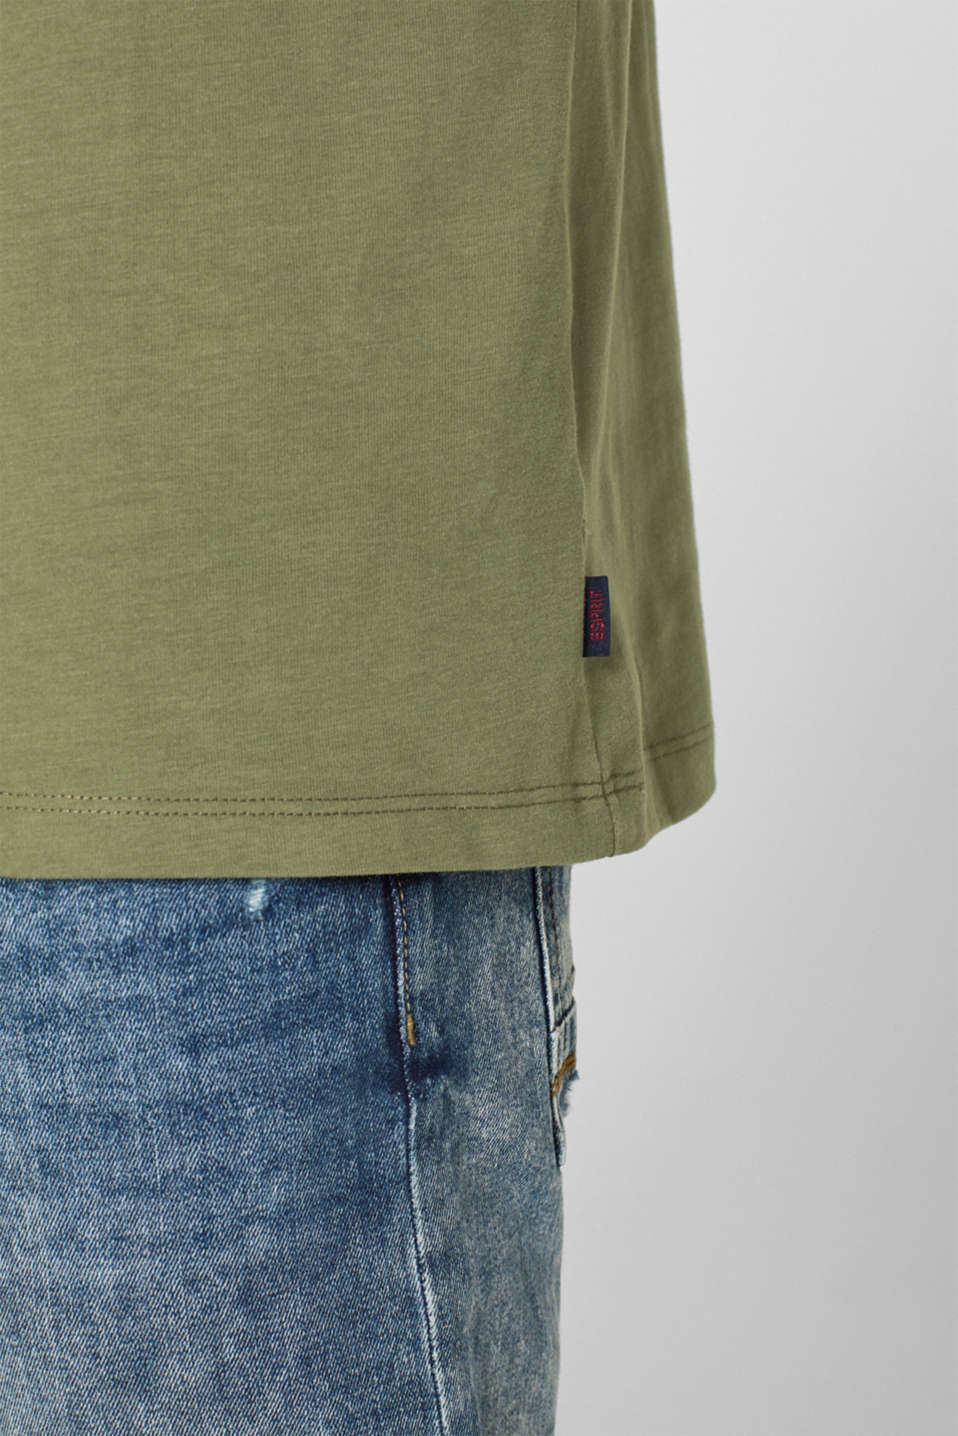 Long sleeve jersey top in 100% cotton, KHAKI GREEN, detail image number 1